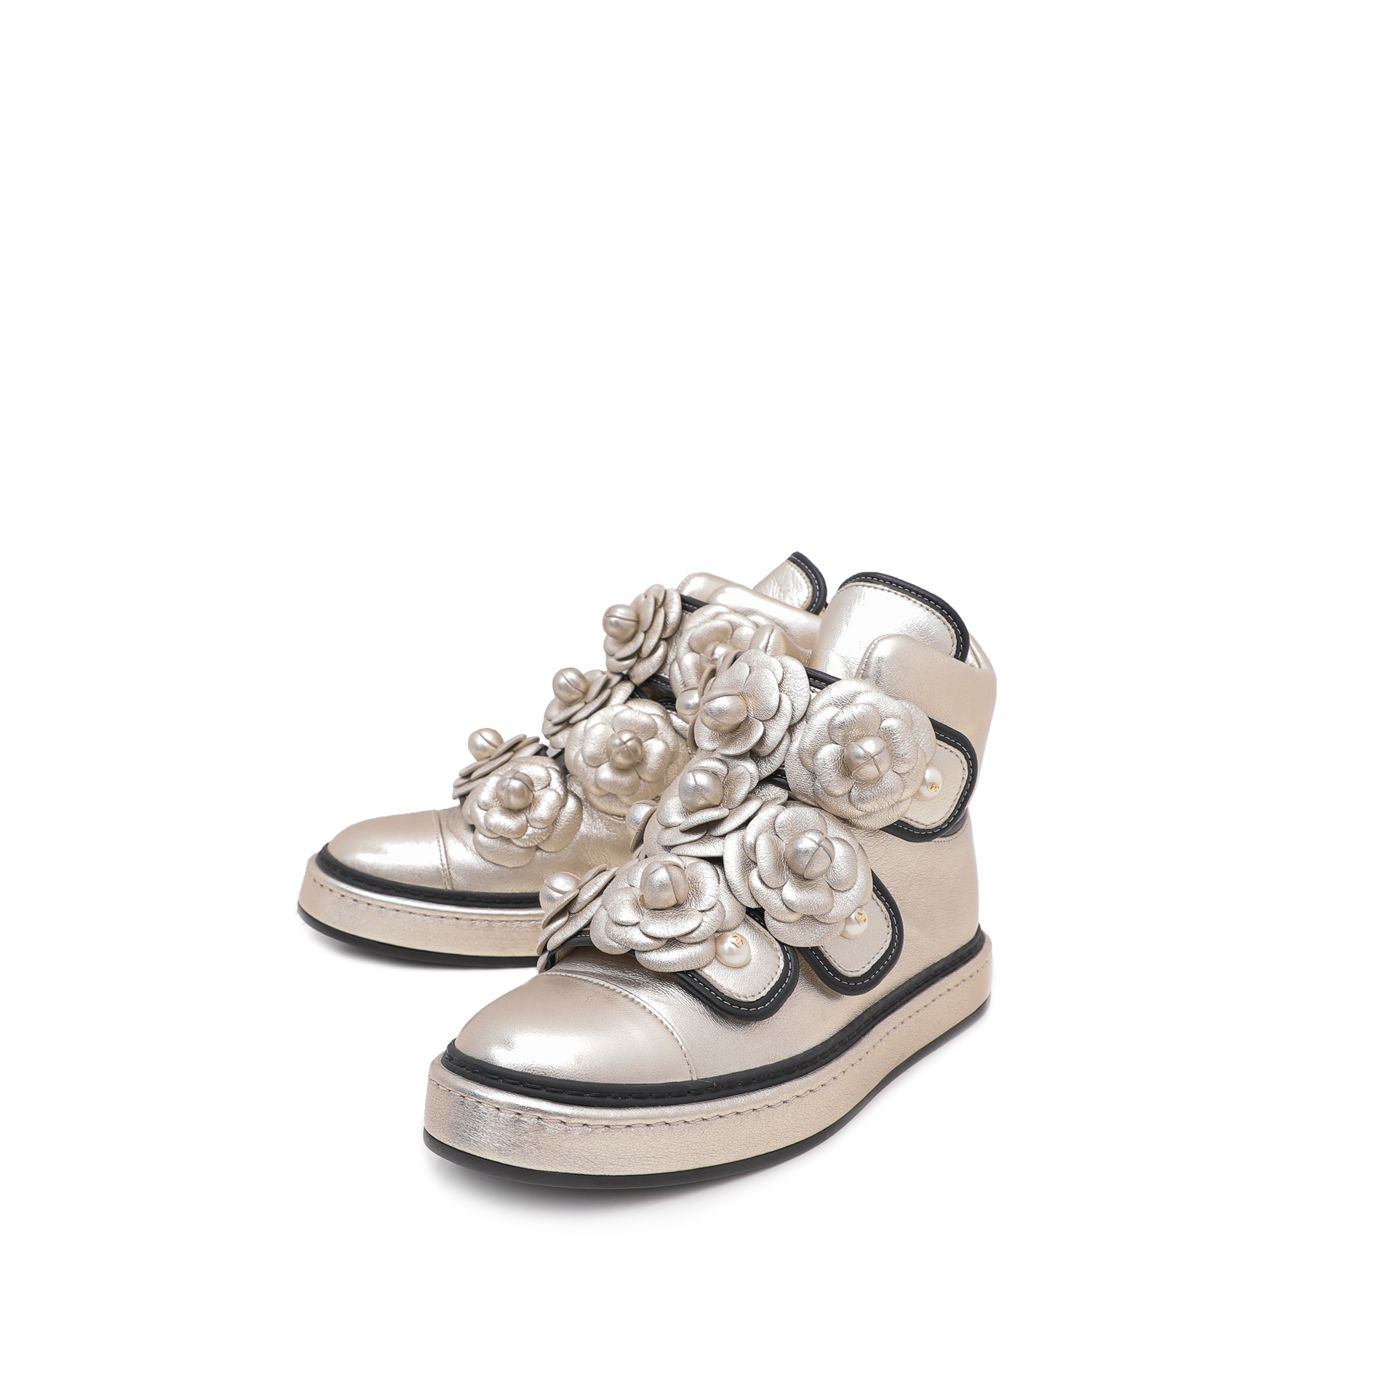 Chanel Champagne CC Camellia Flowers Metallic Pearl Sneakers 37